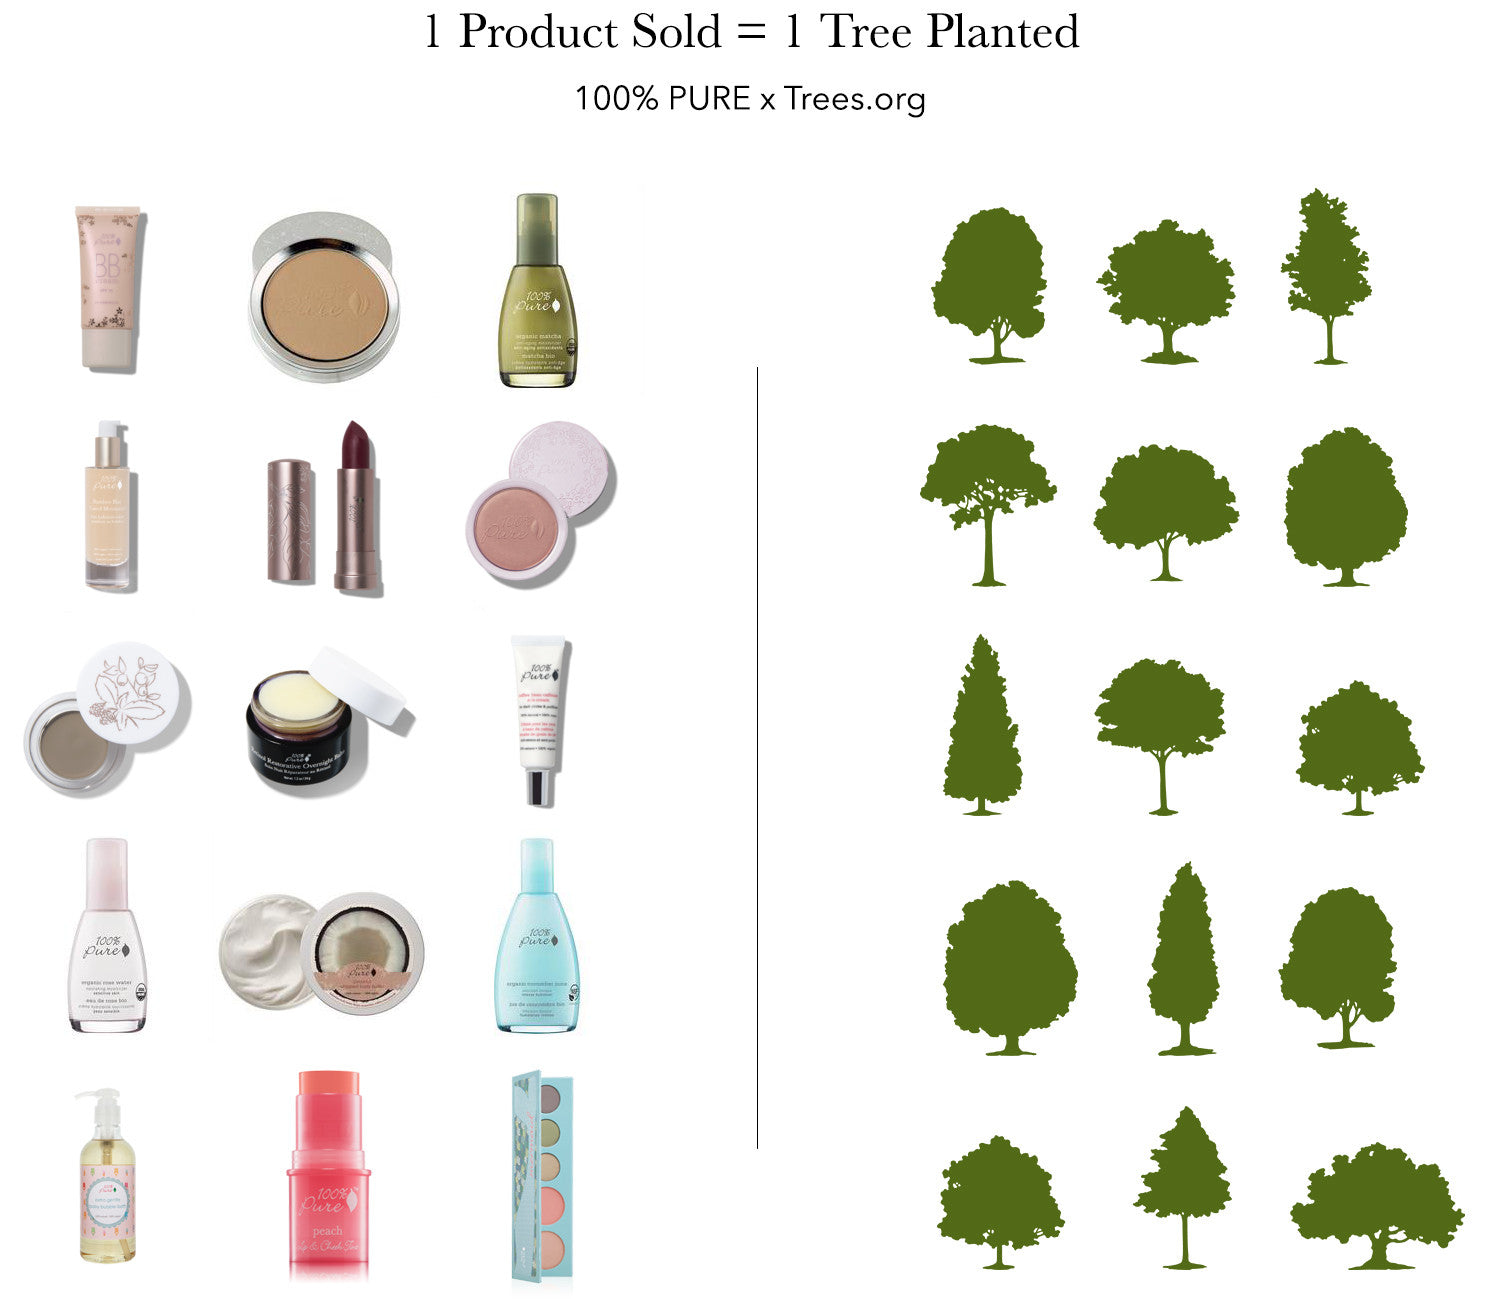 100% PURE products and earth day trees